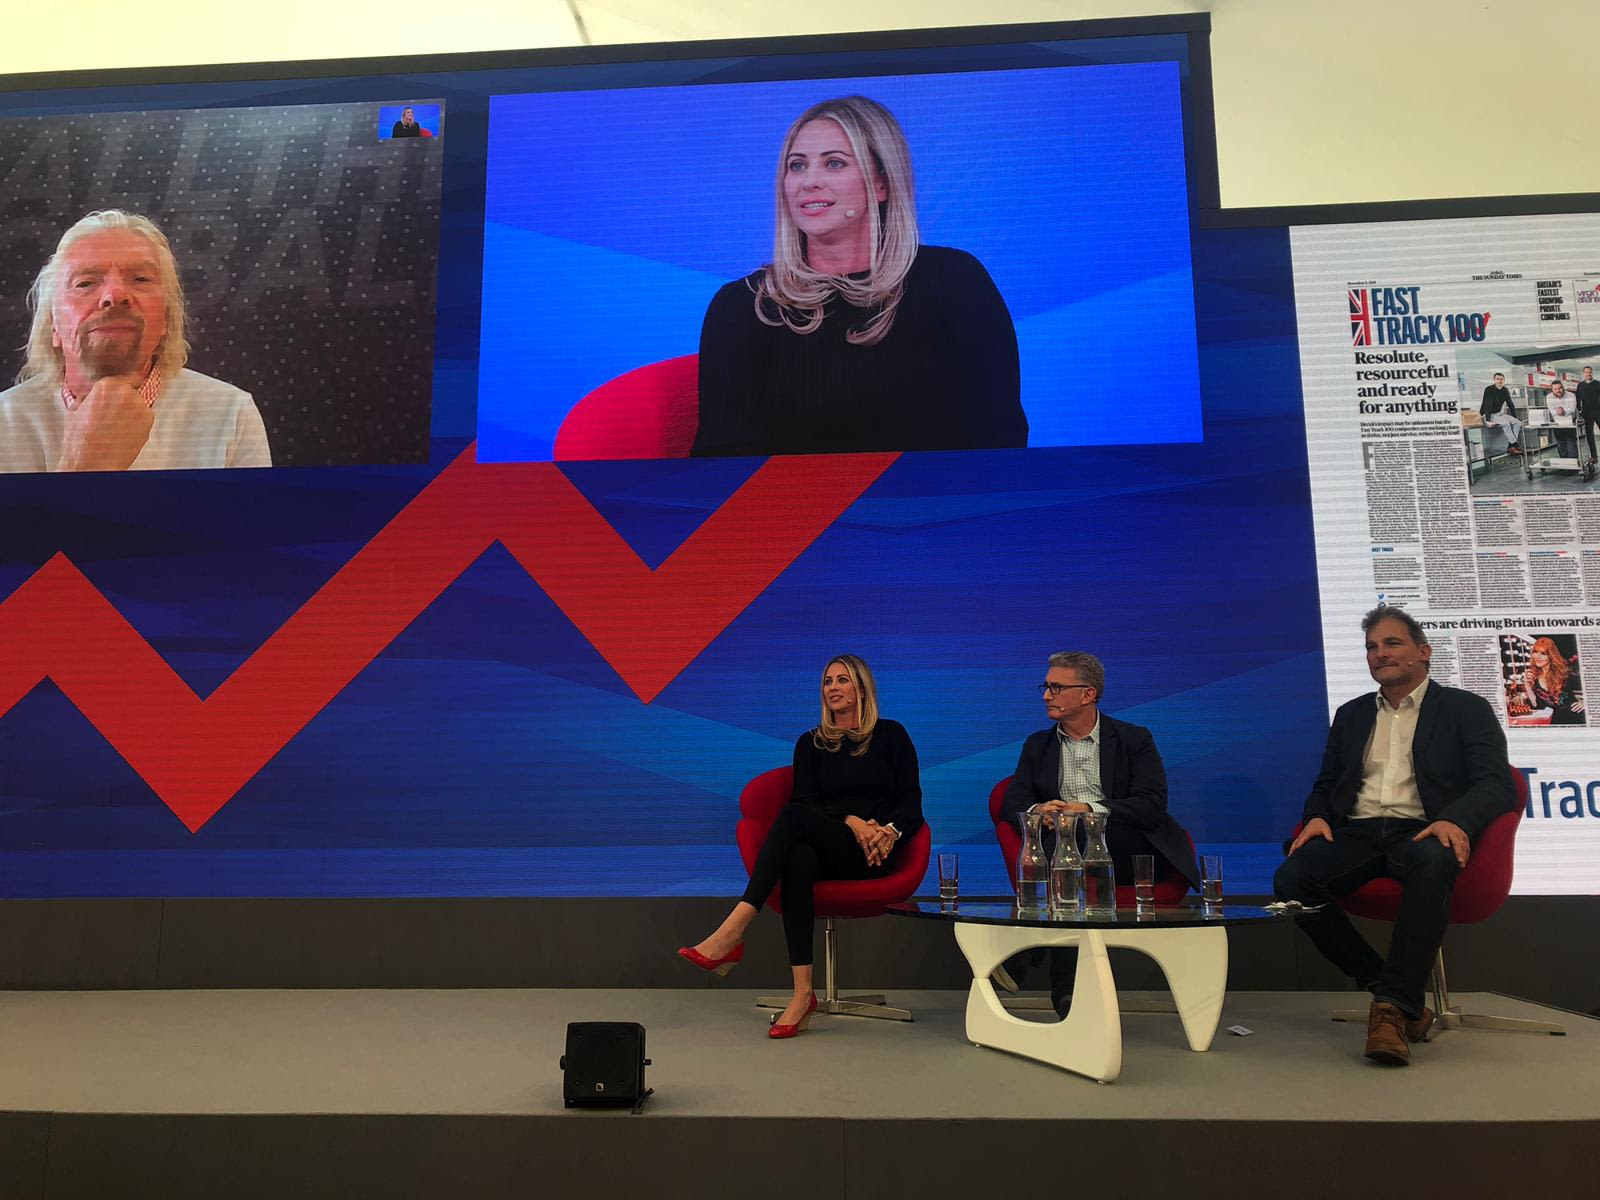 Richard Branson and Holly Branson on a pane at FastTrack 2019